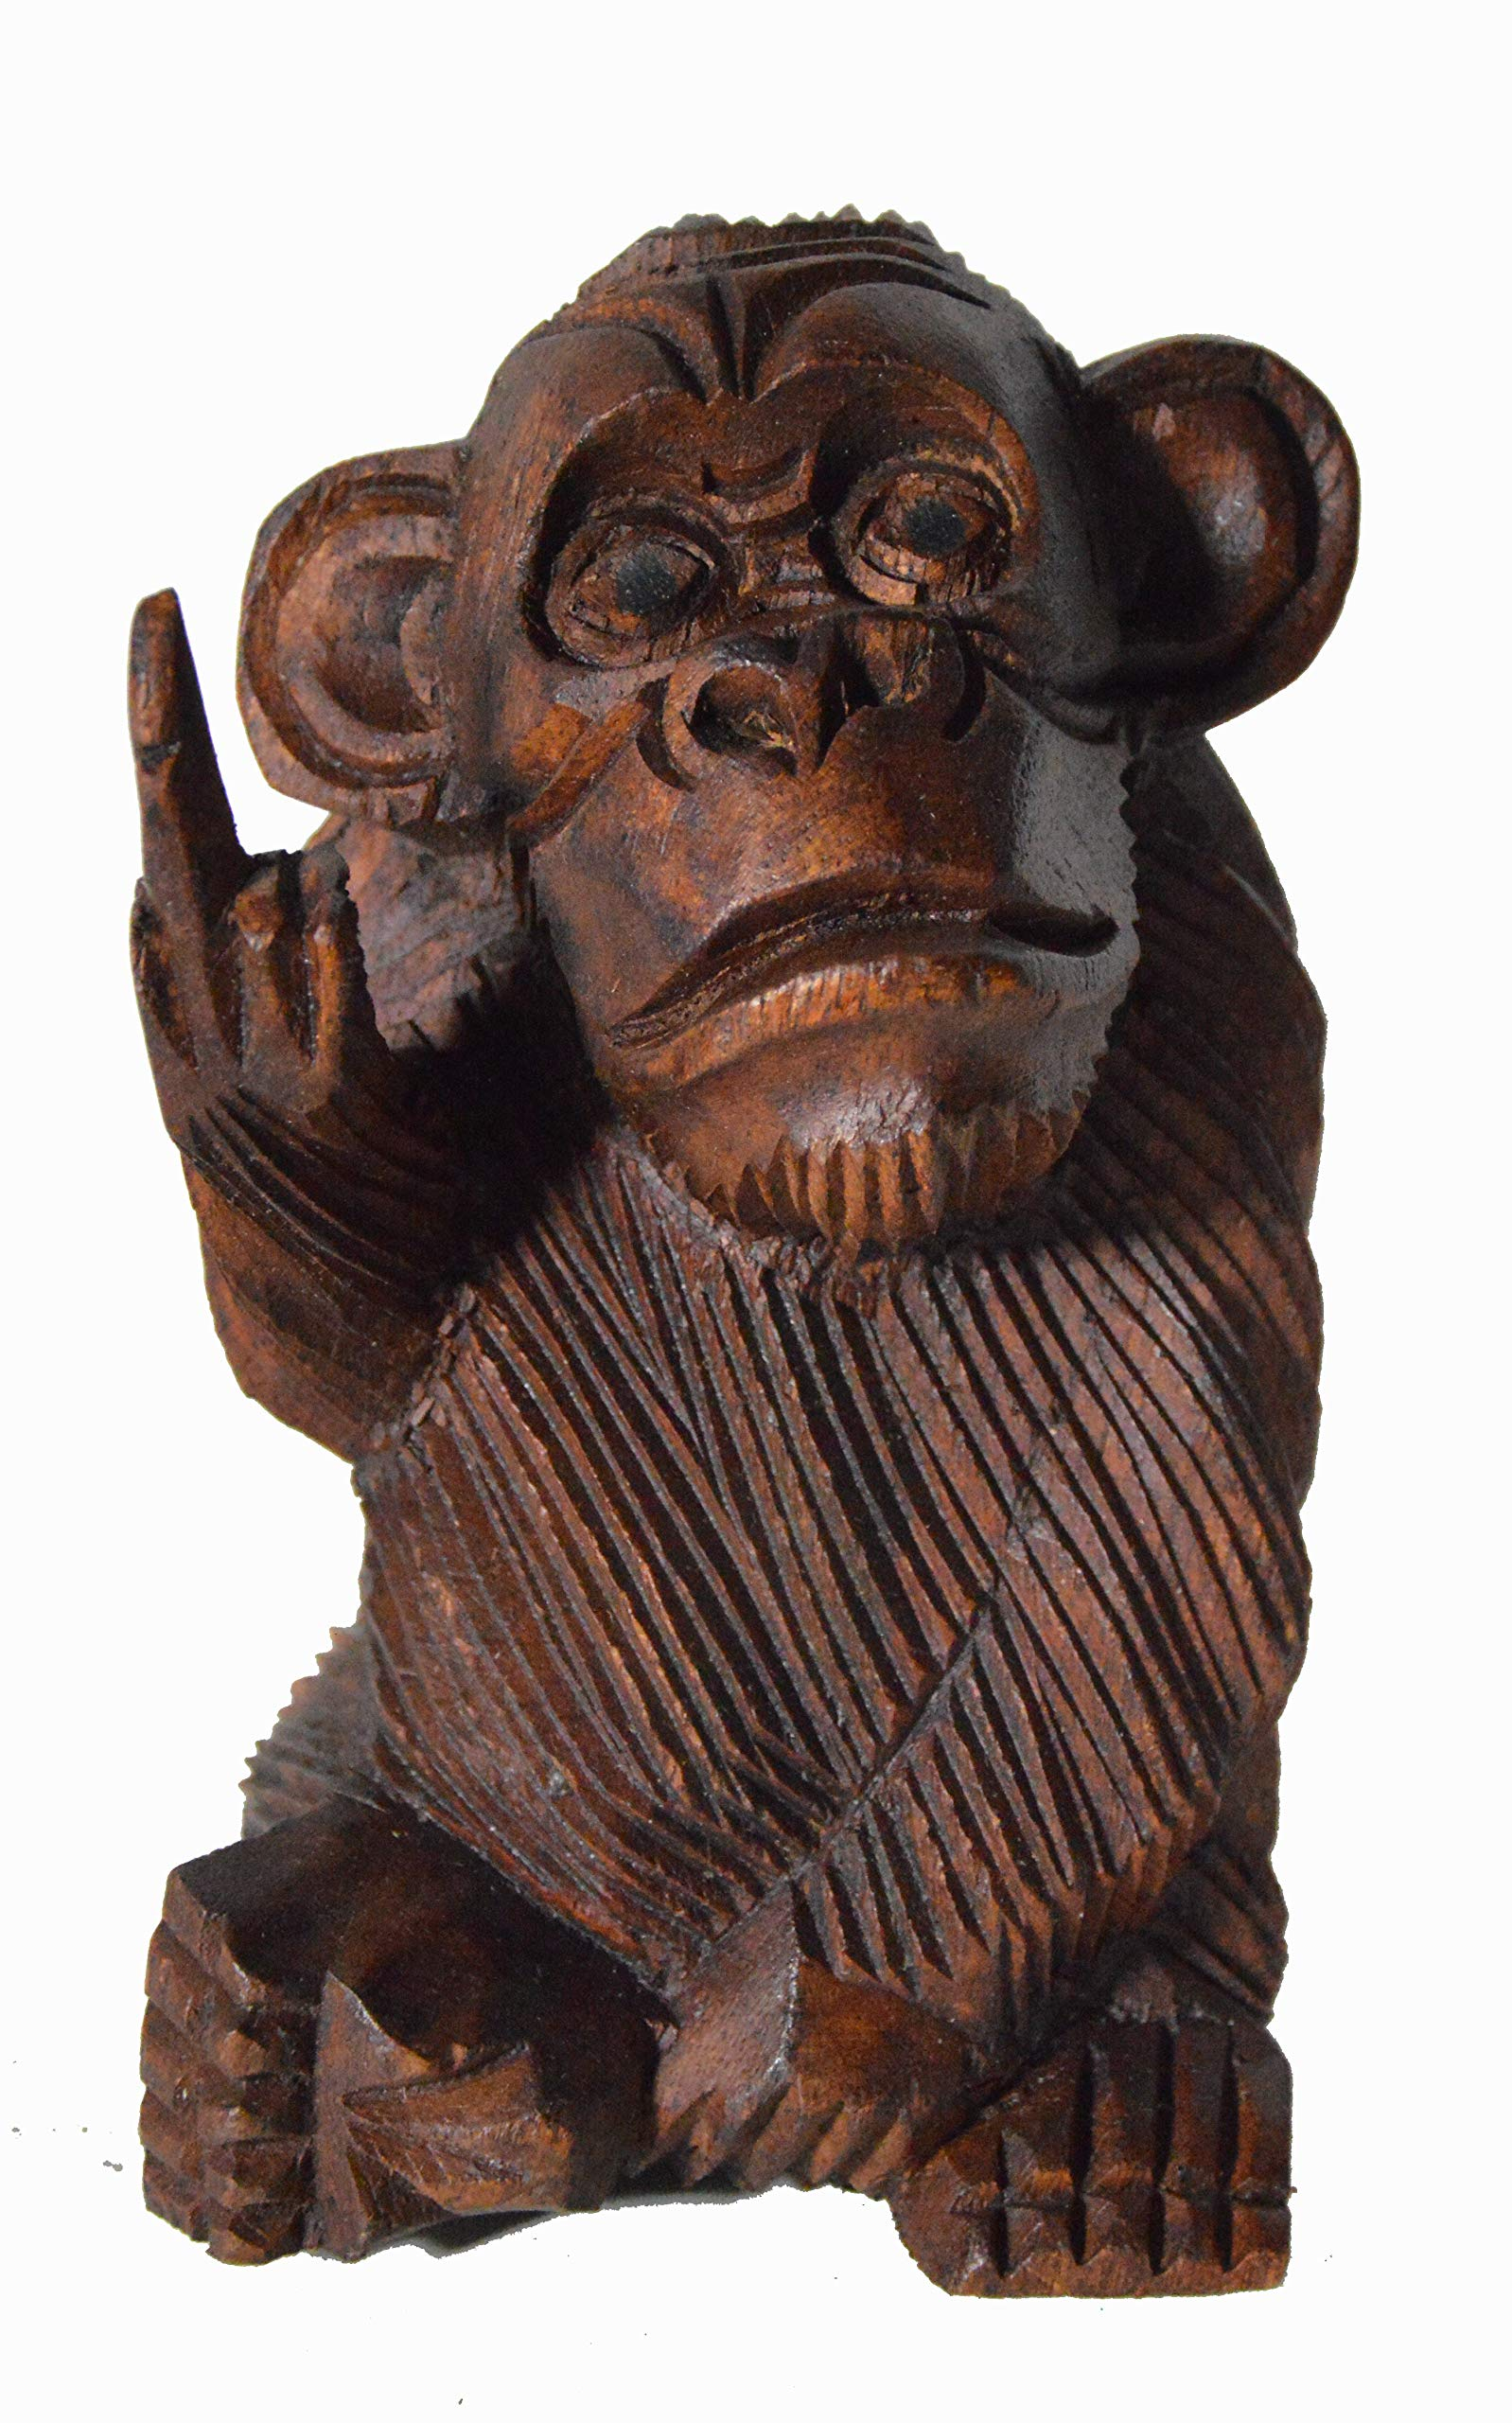 BAD MONKEY RUDE FLIPPING THE BIRD GIVING FINGER STATUE 6 IN worldbazzar brand by WorldBazzar